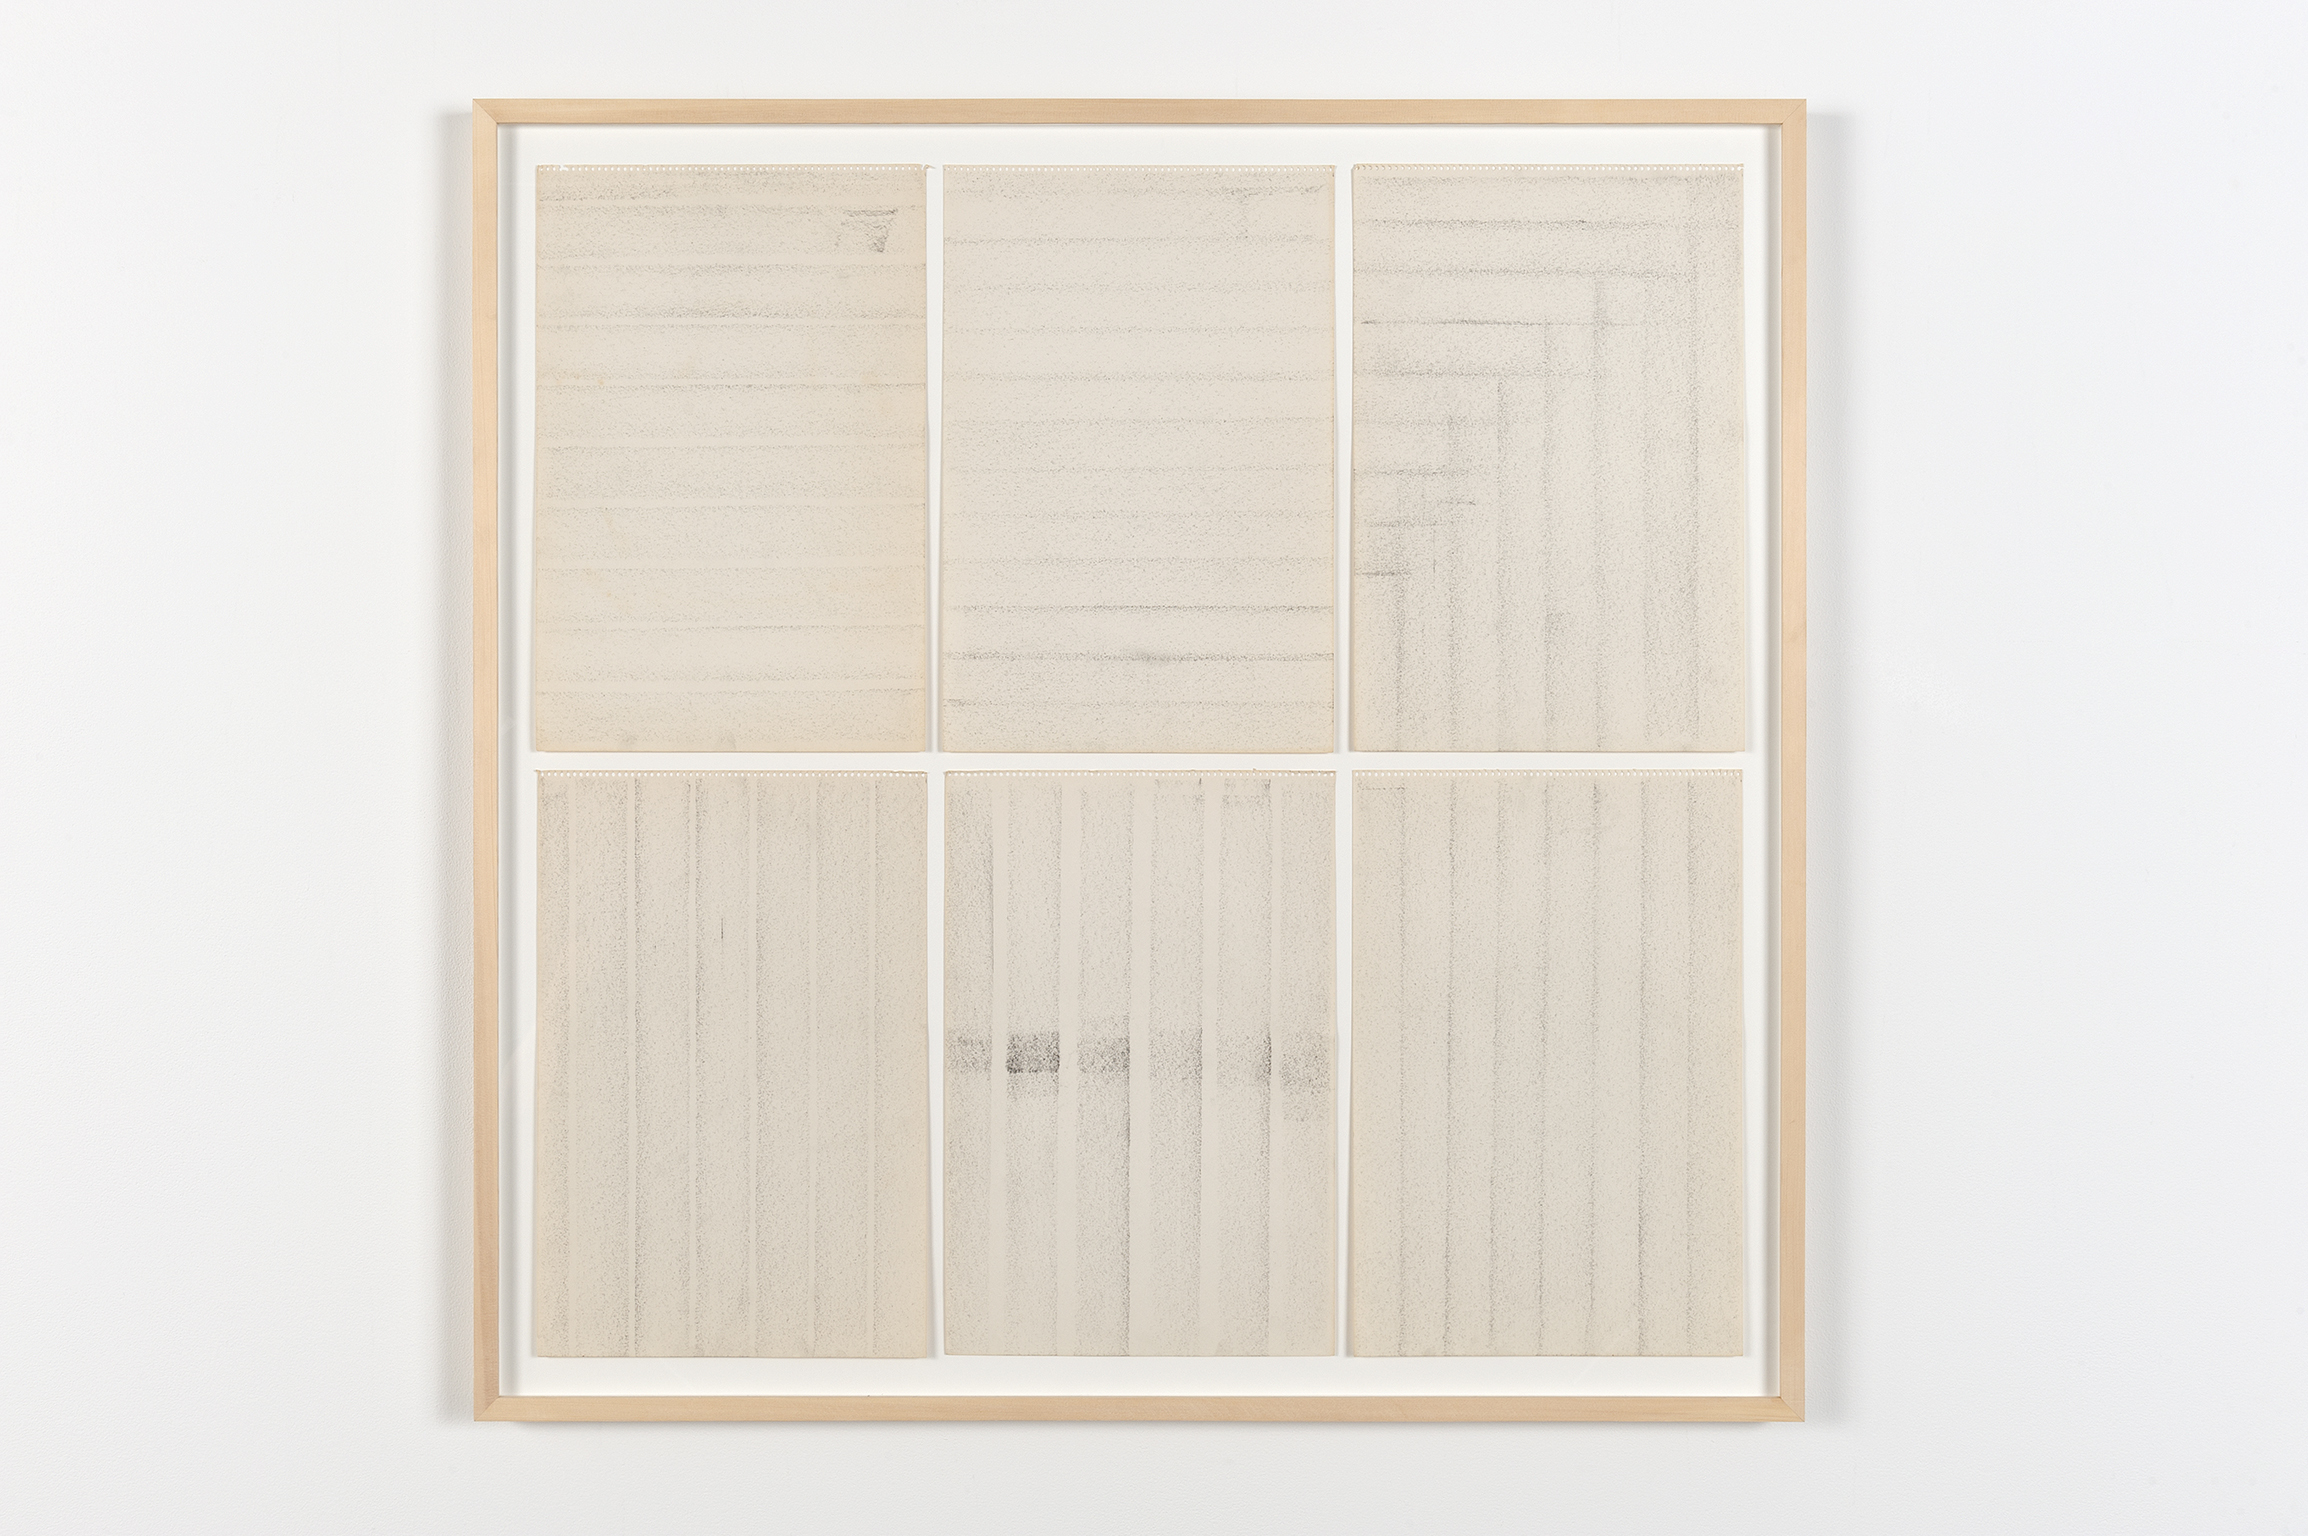 Robert Kleyn, Untitled, 1963–1970, graphite on paper, 40 x 41 in. (102 x 104 cm)  ​ by